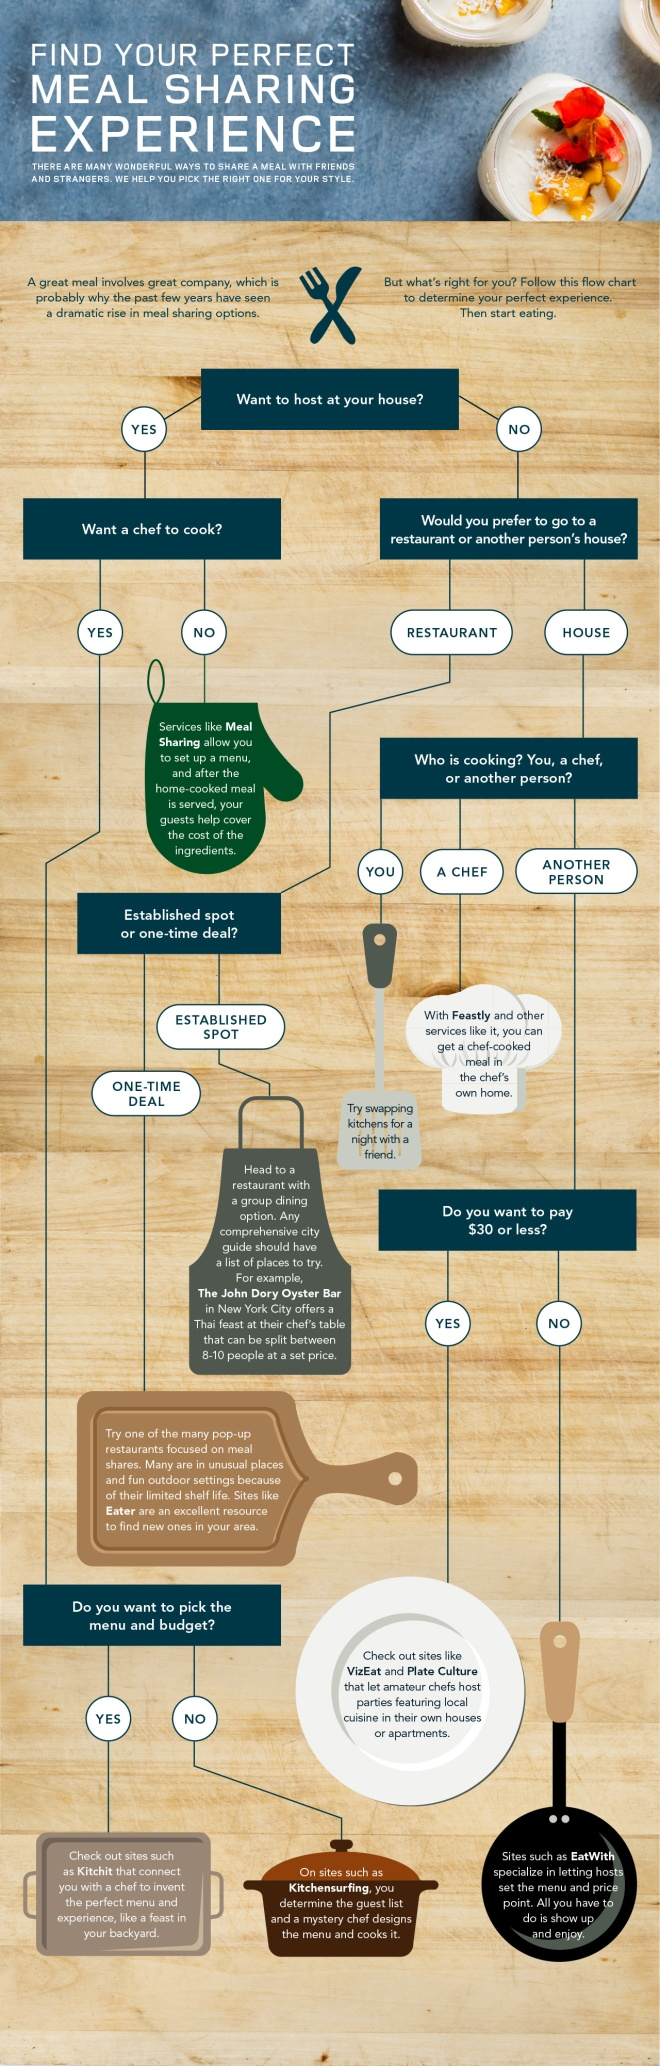 LAND ROVER: MEAL SHARING DECISION TREE